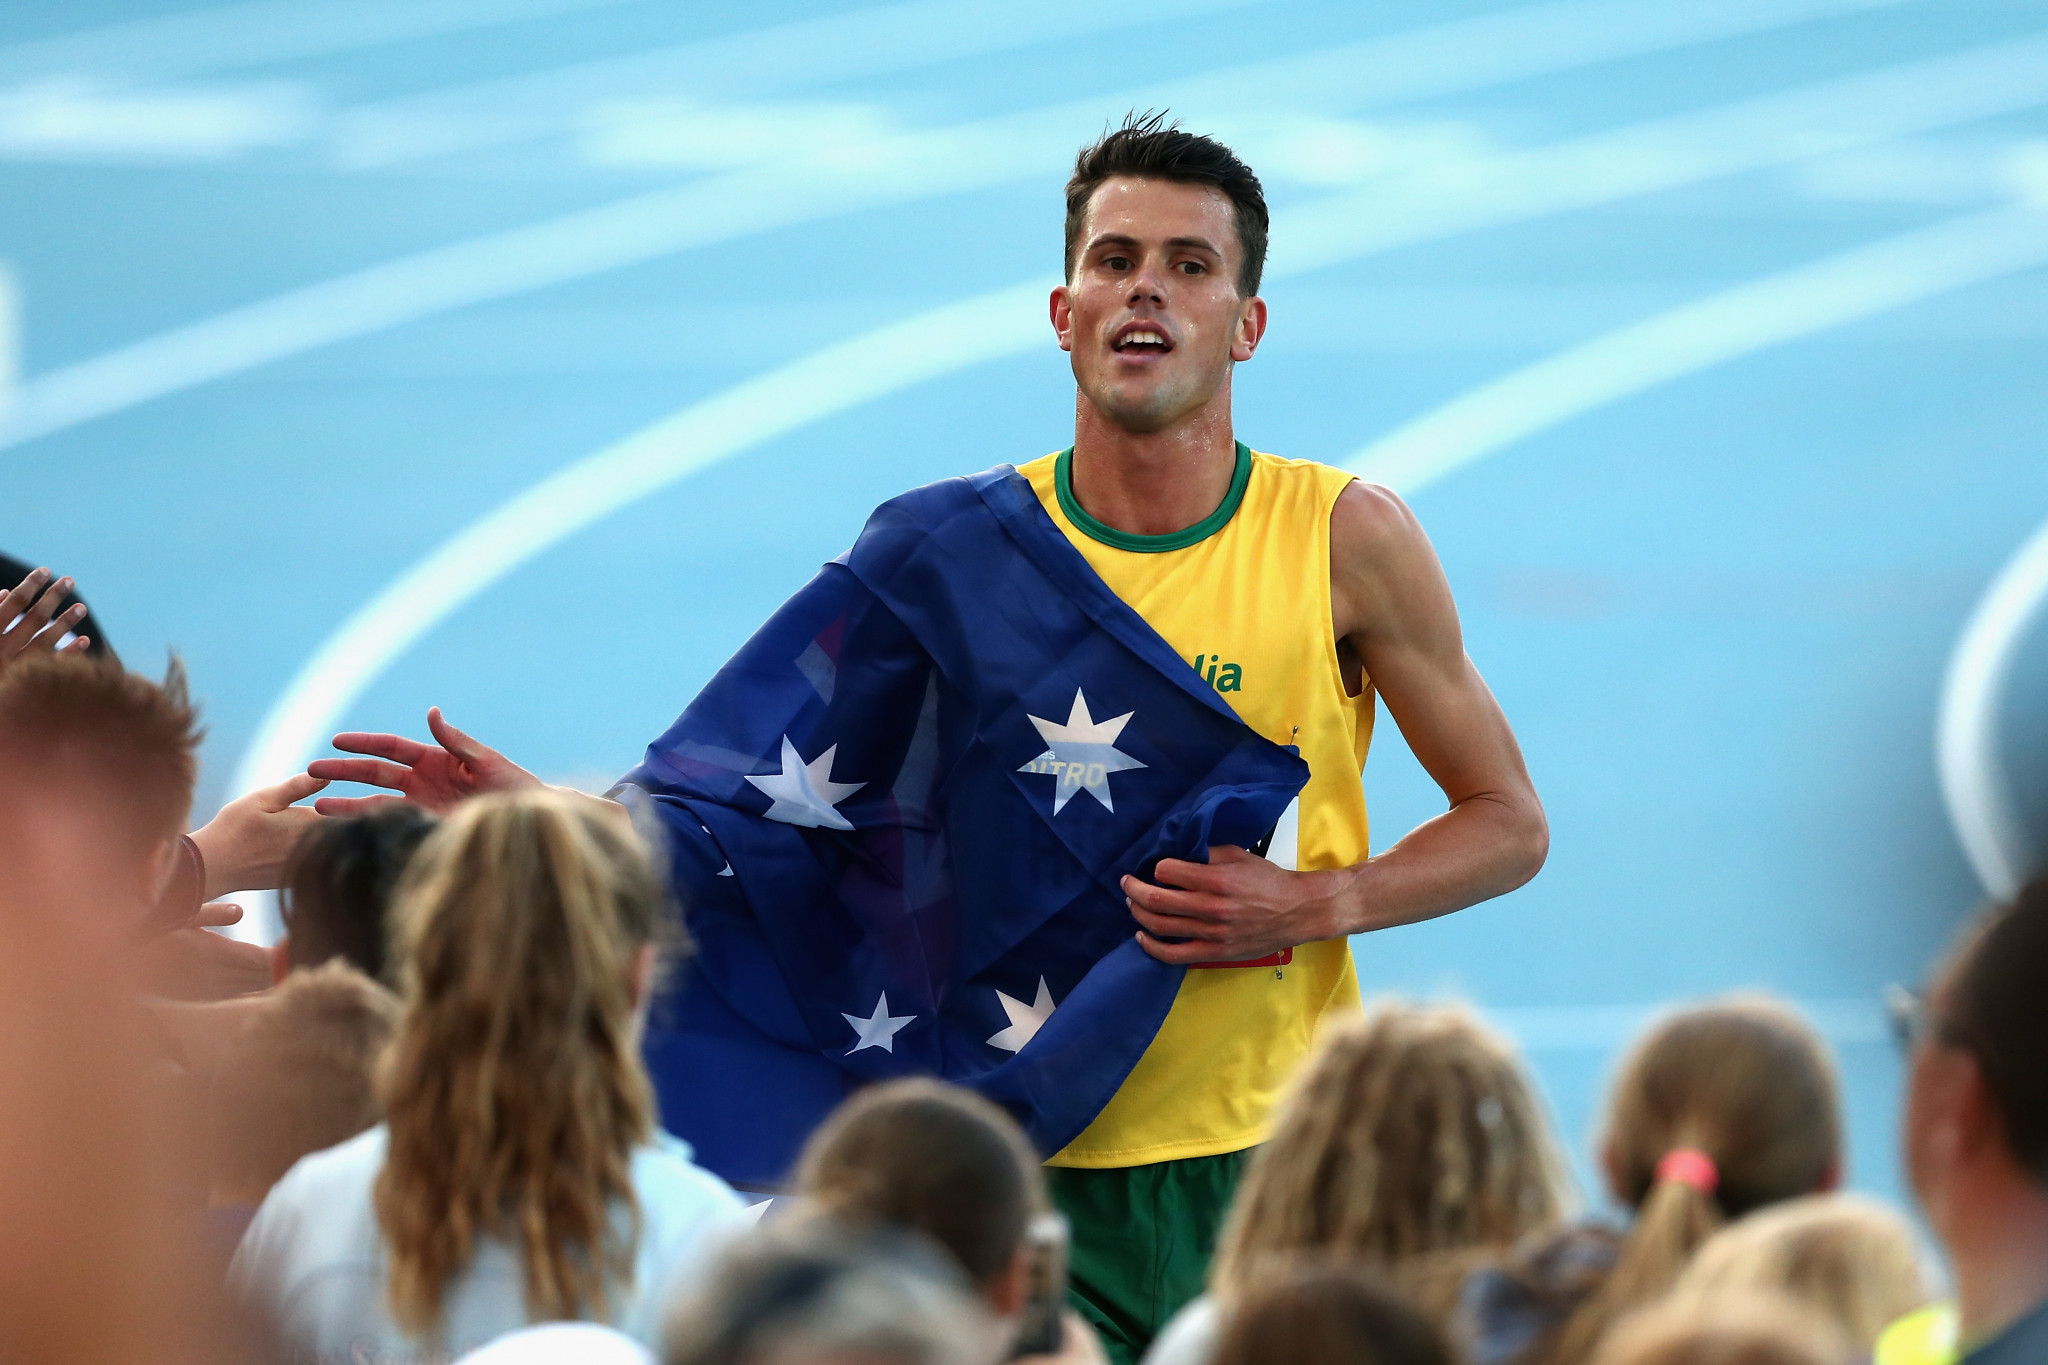 Full Australian athletics team for Gold Coast 2018 held up by appeal process